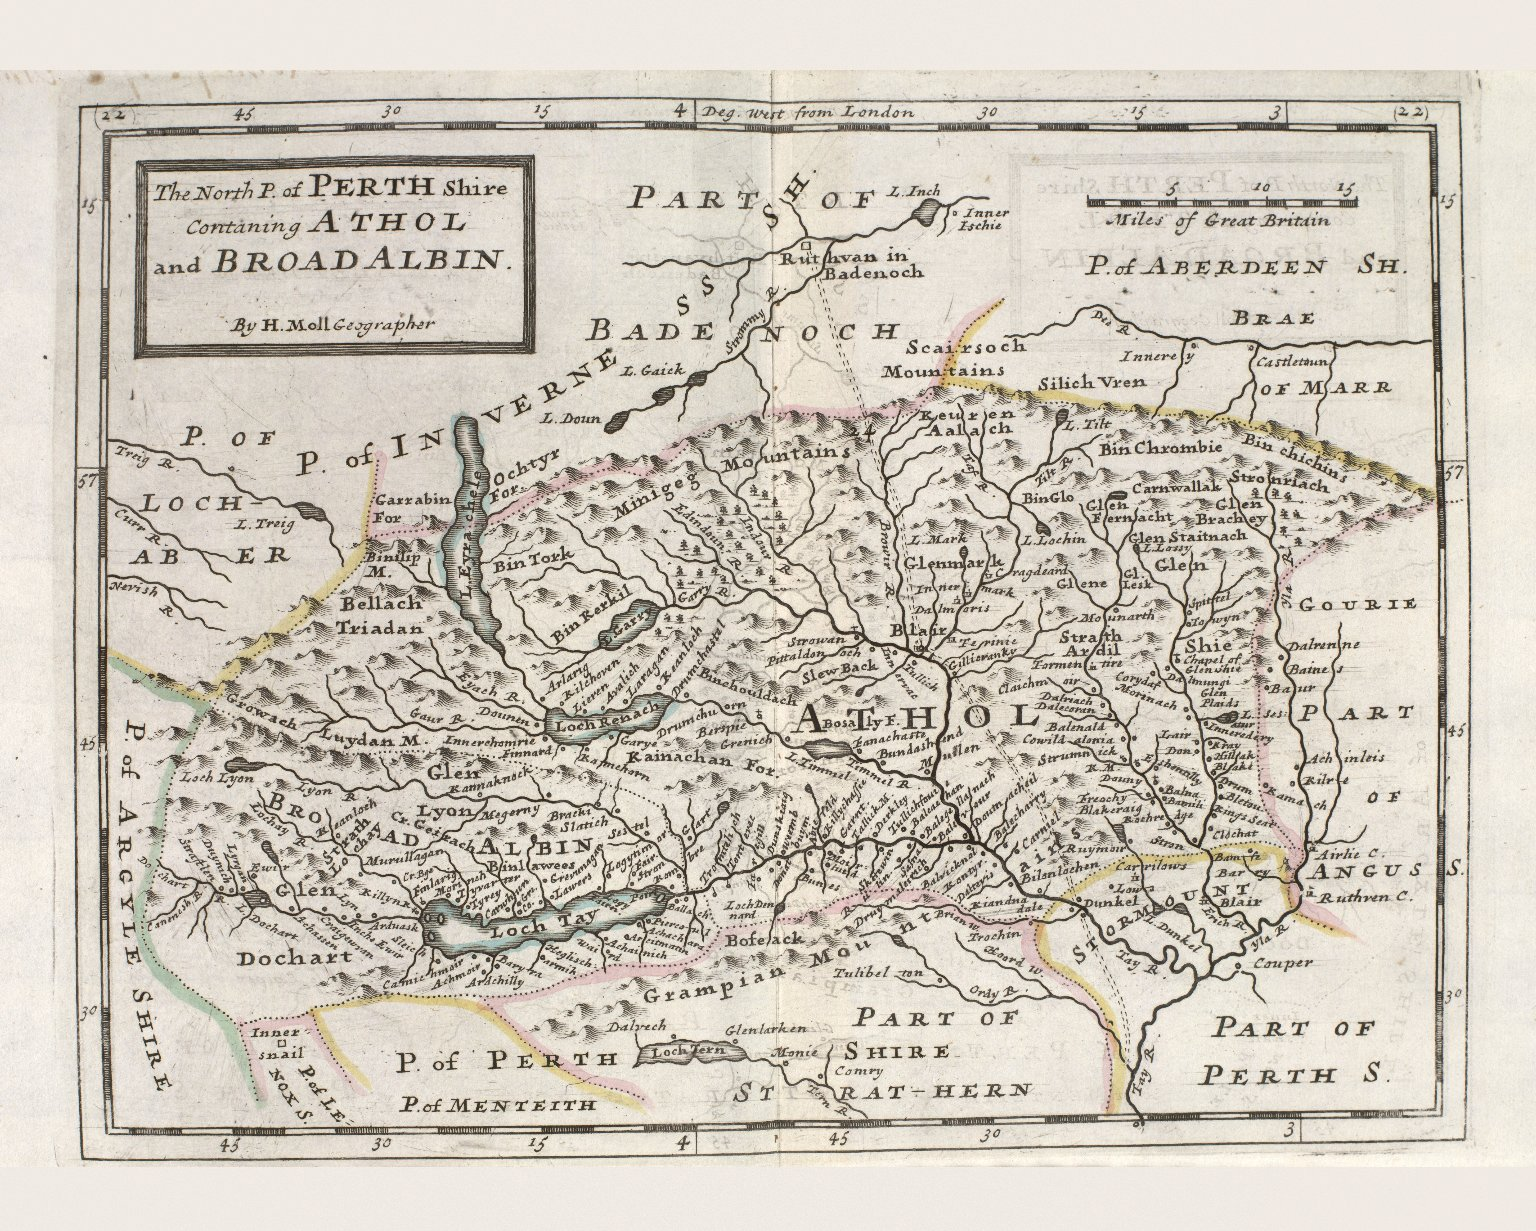 The North P. of Perth Shire Containing Athol and Broadalbin. [1 of 1]